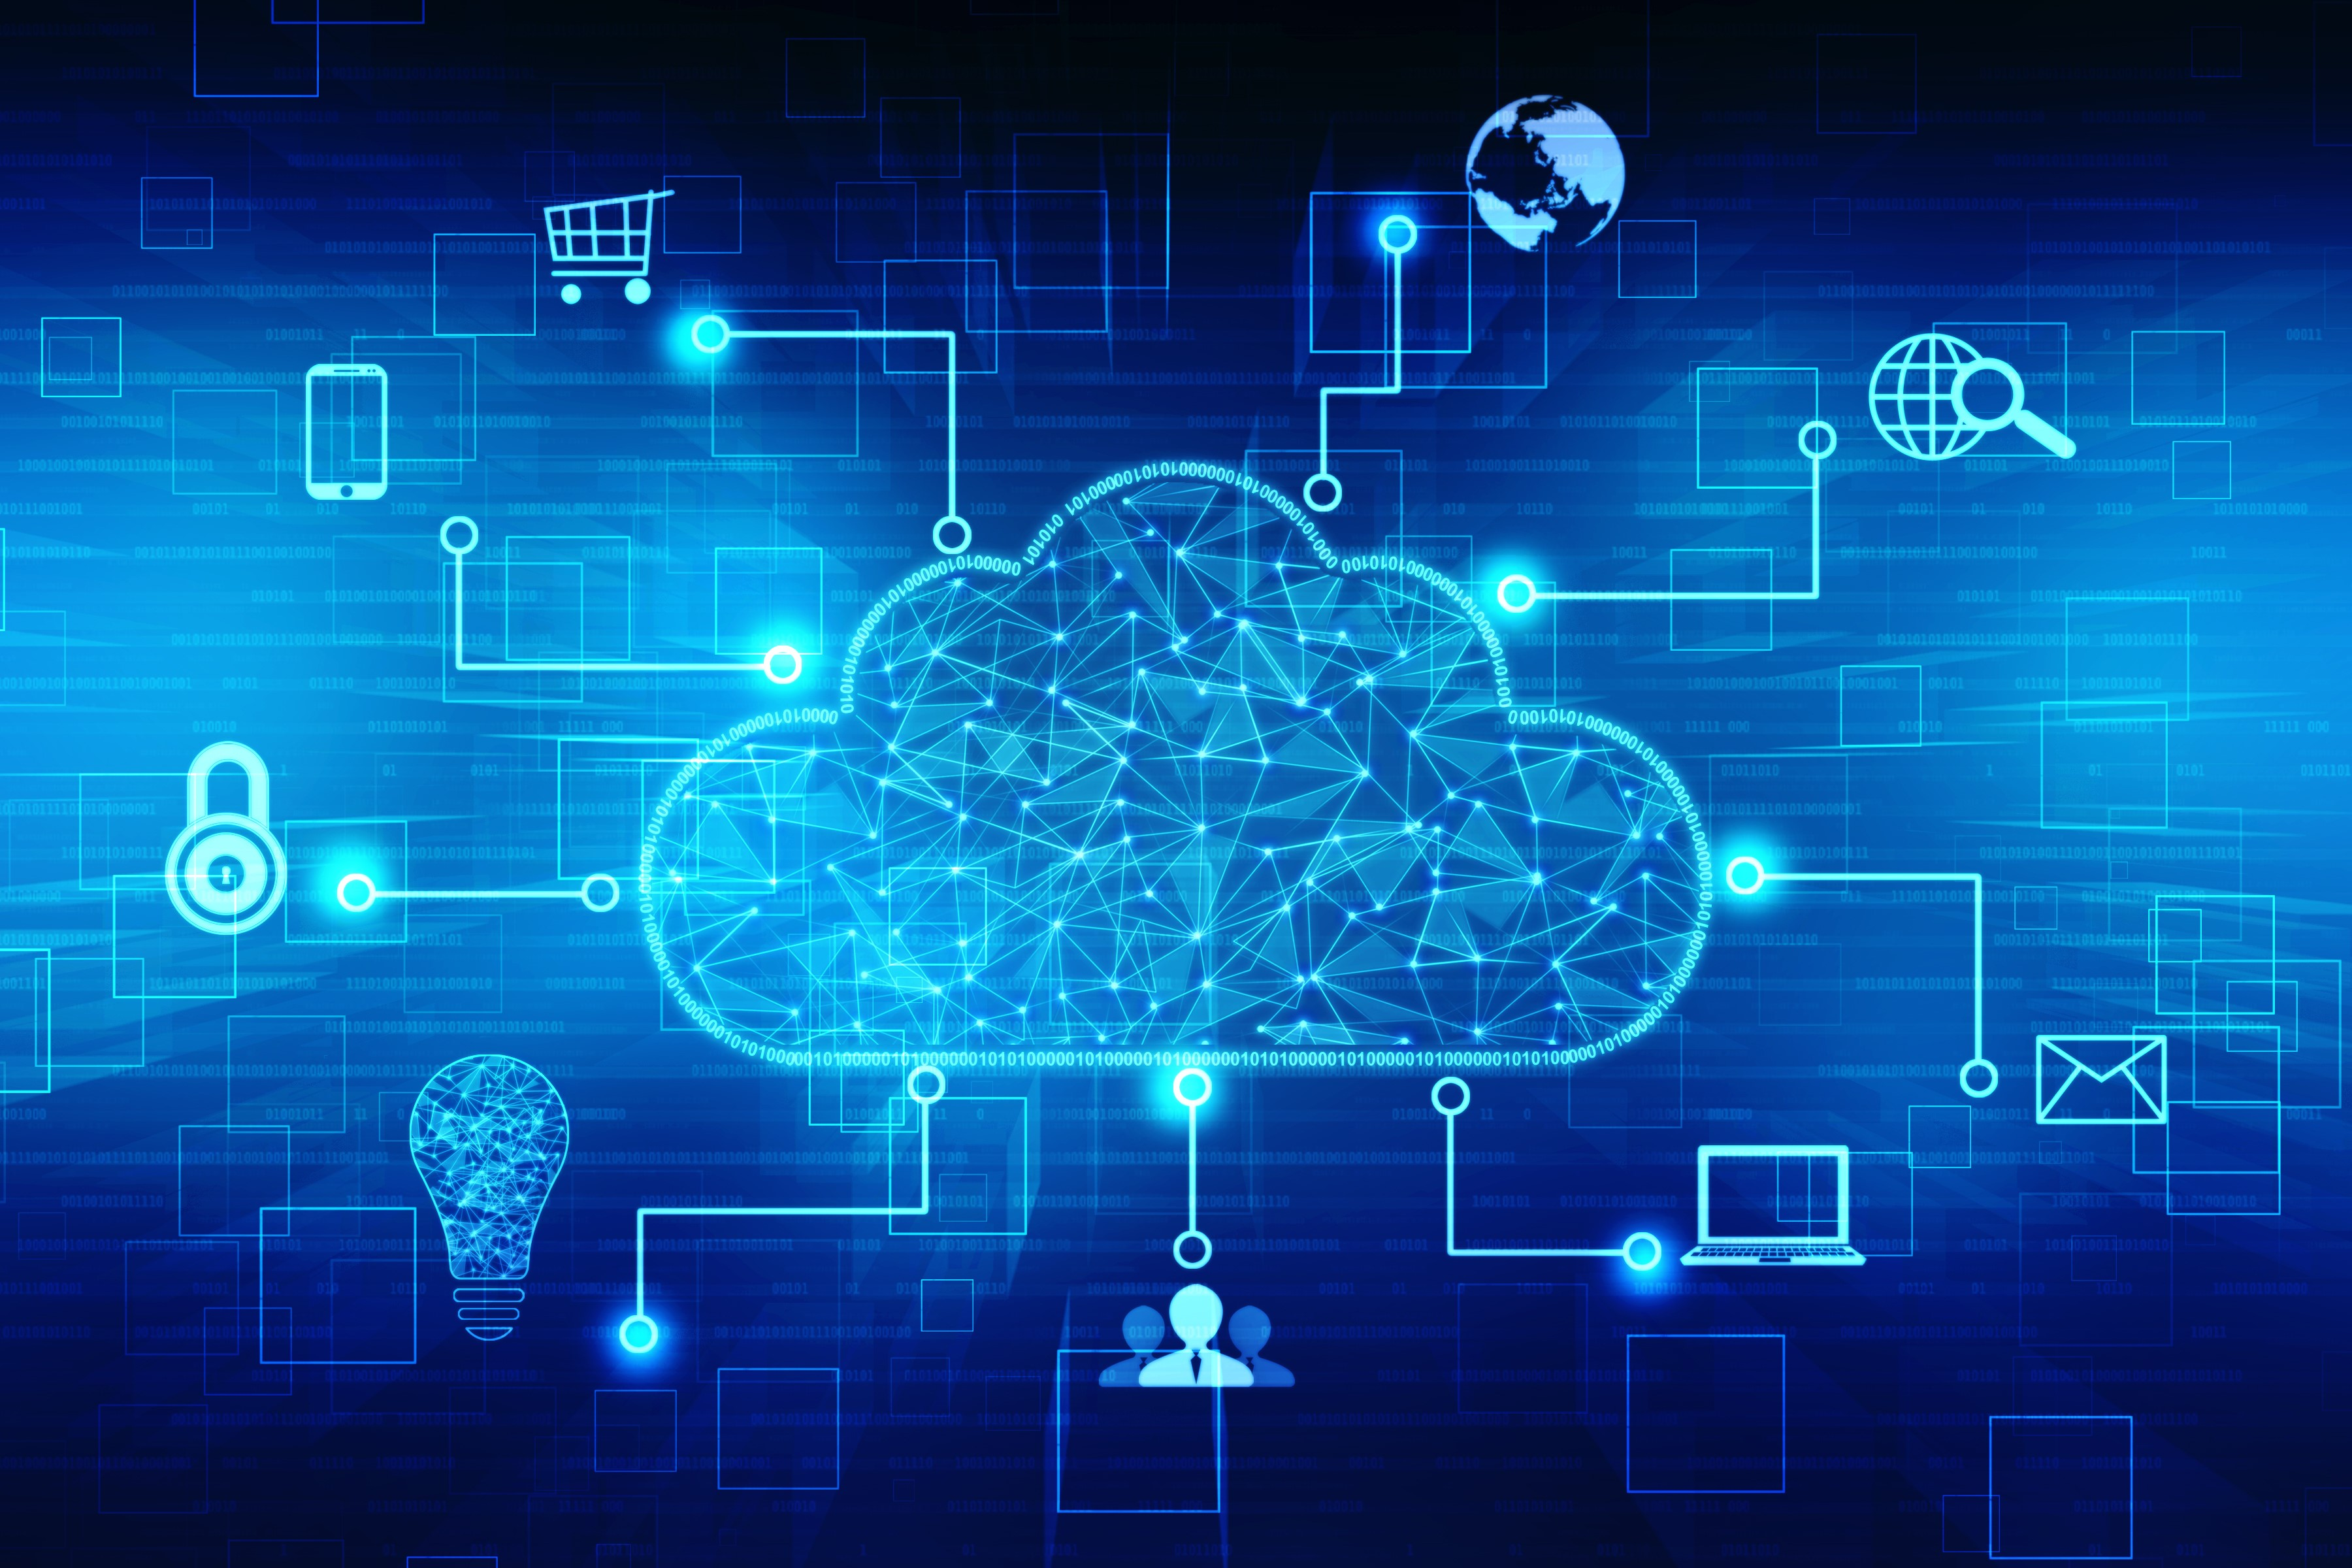 Leveraging Cloud Technologies with HyCloud